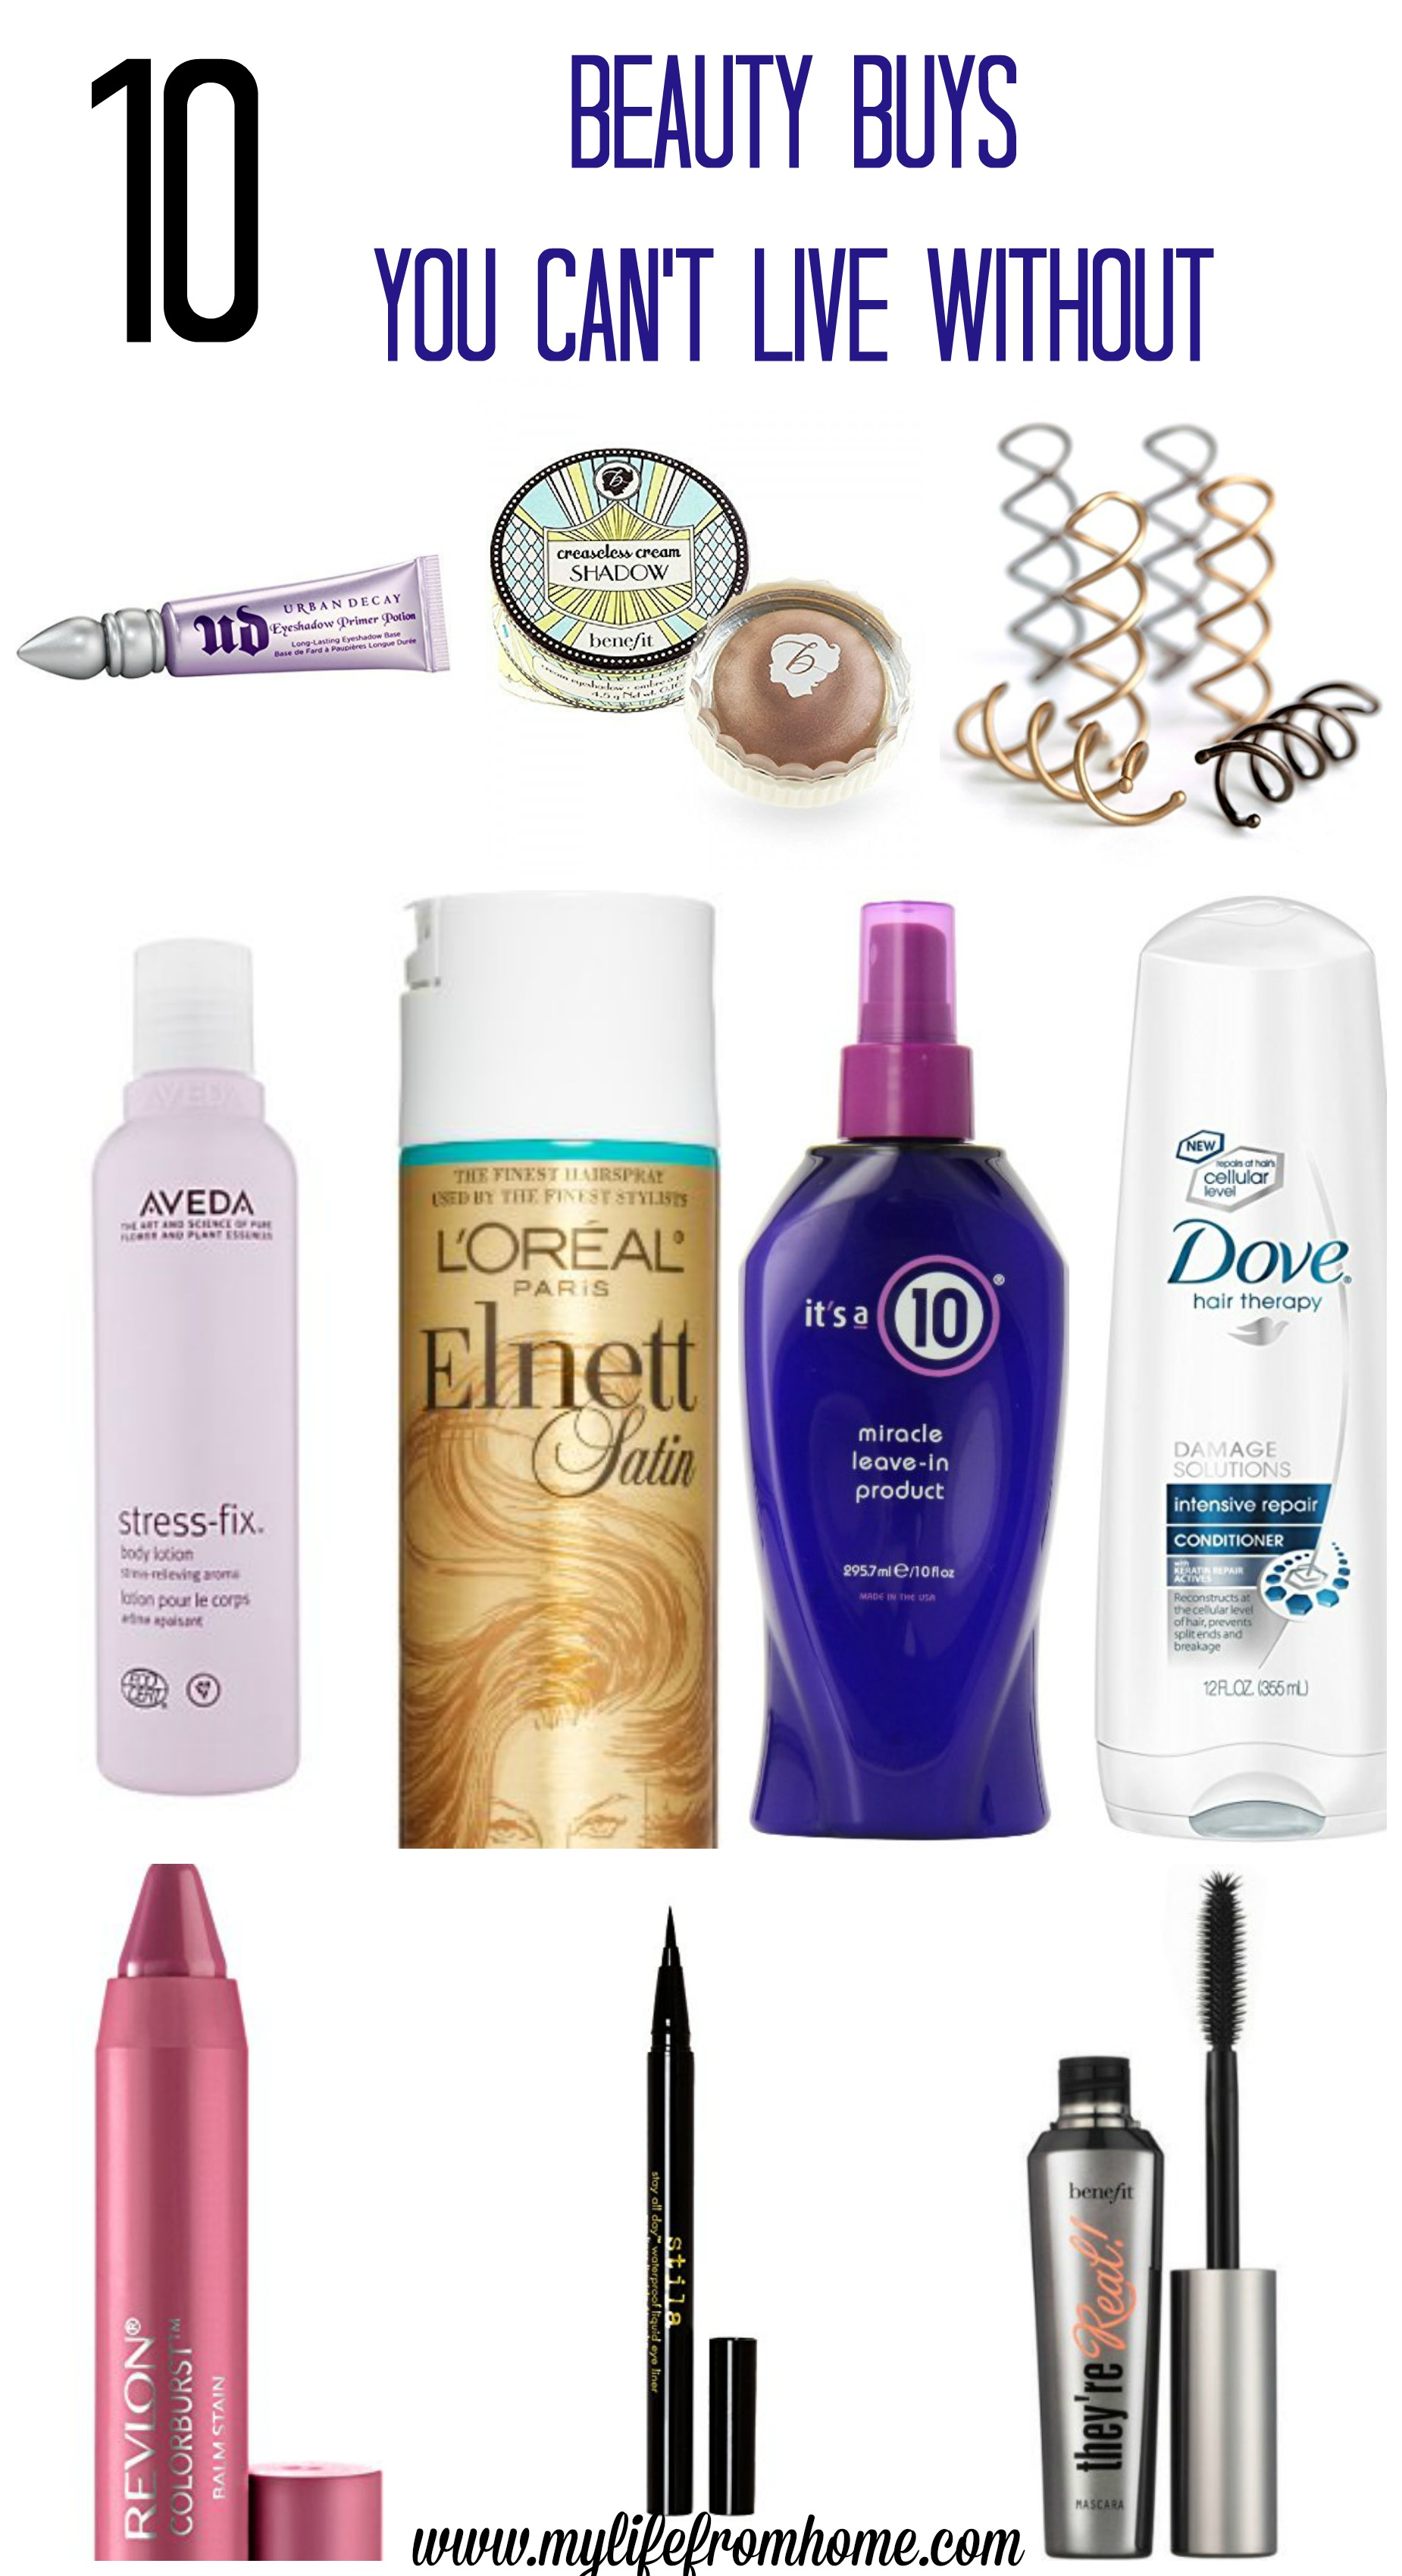 10-beauty-buys-you-cant-live-without-holiday-beauty-gifts-gifts-for-women-beauty-makeup-hair-fashion-style-beauty-products-best-beauty-products